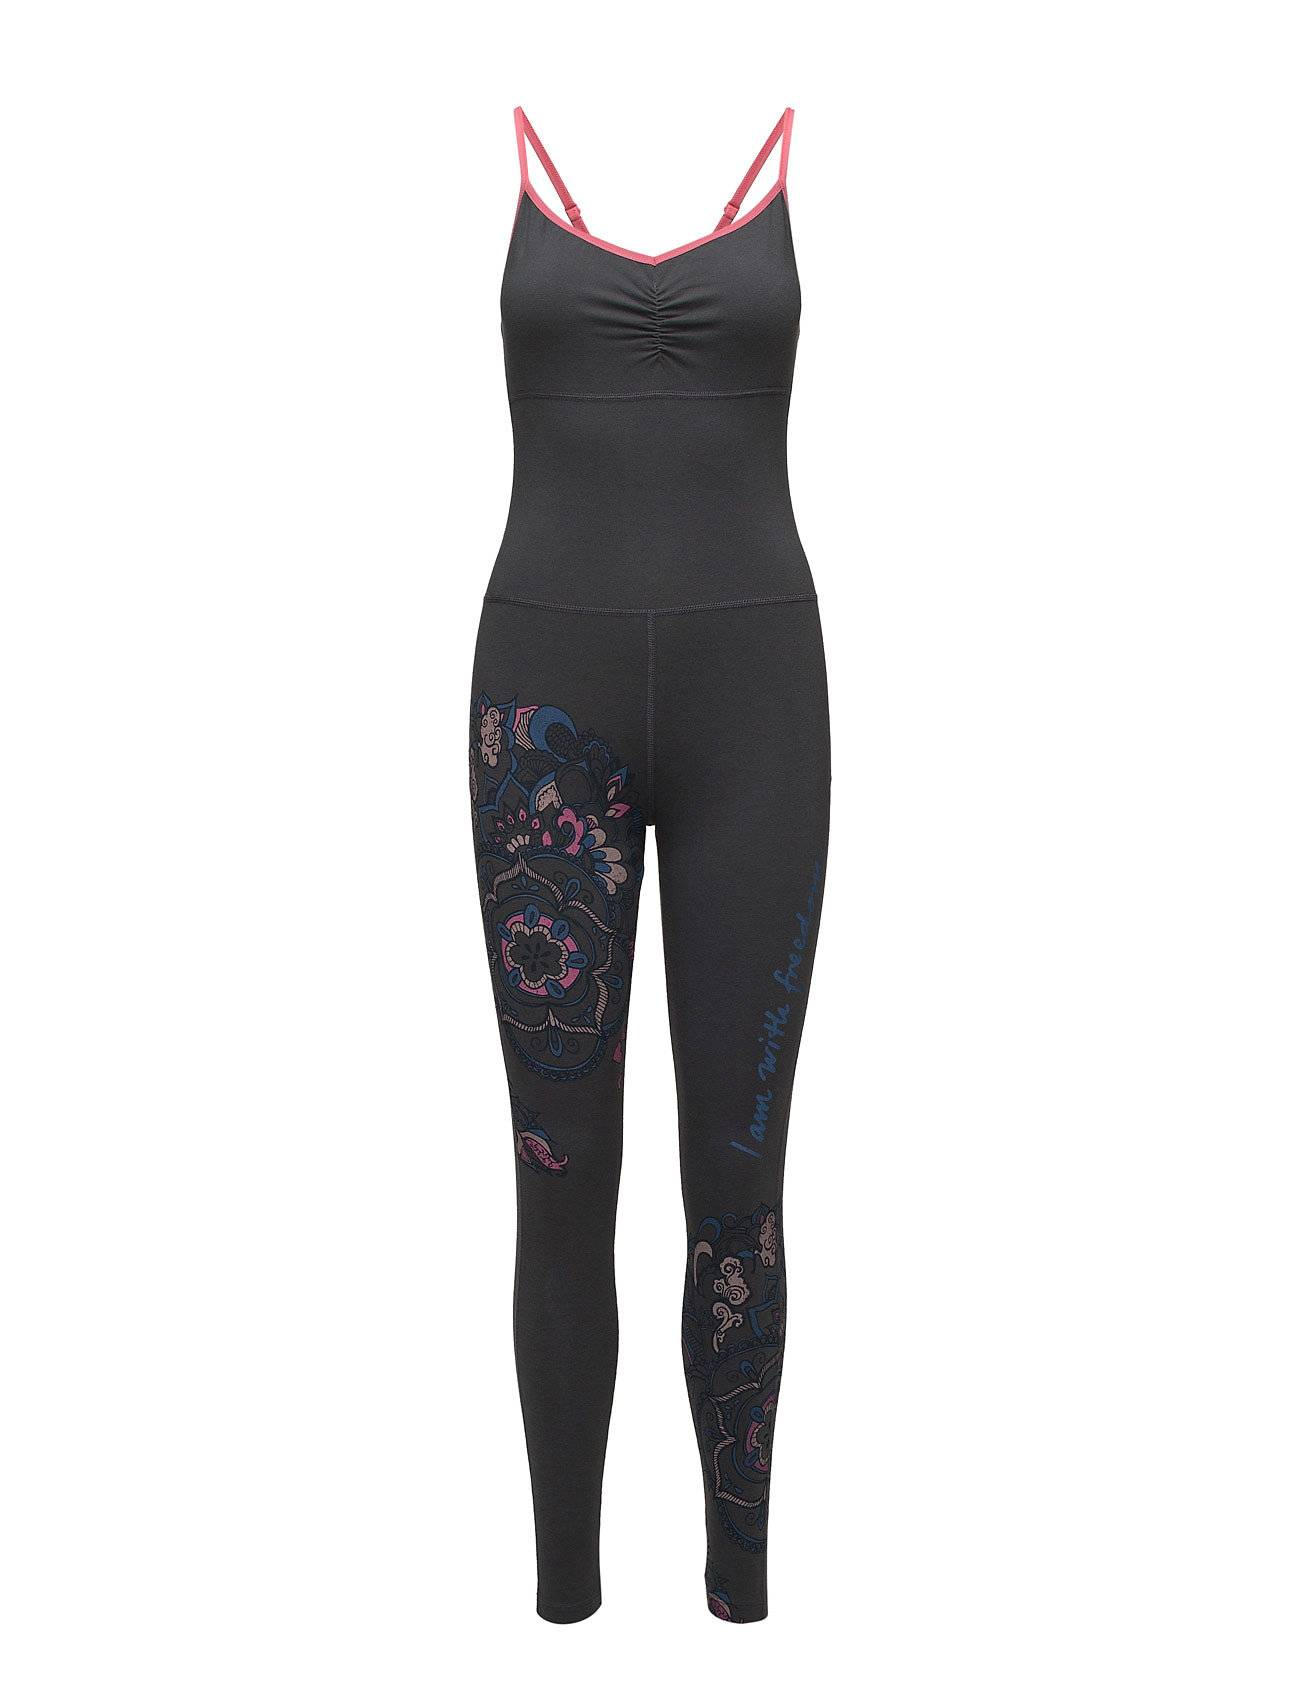 ODD MOLLY ACTIVE WEAR Buddhi Jumpsuit